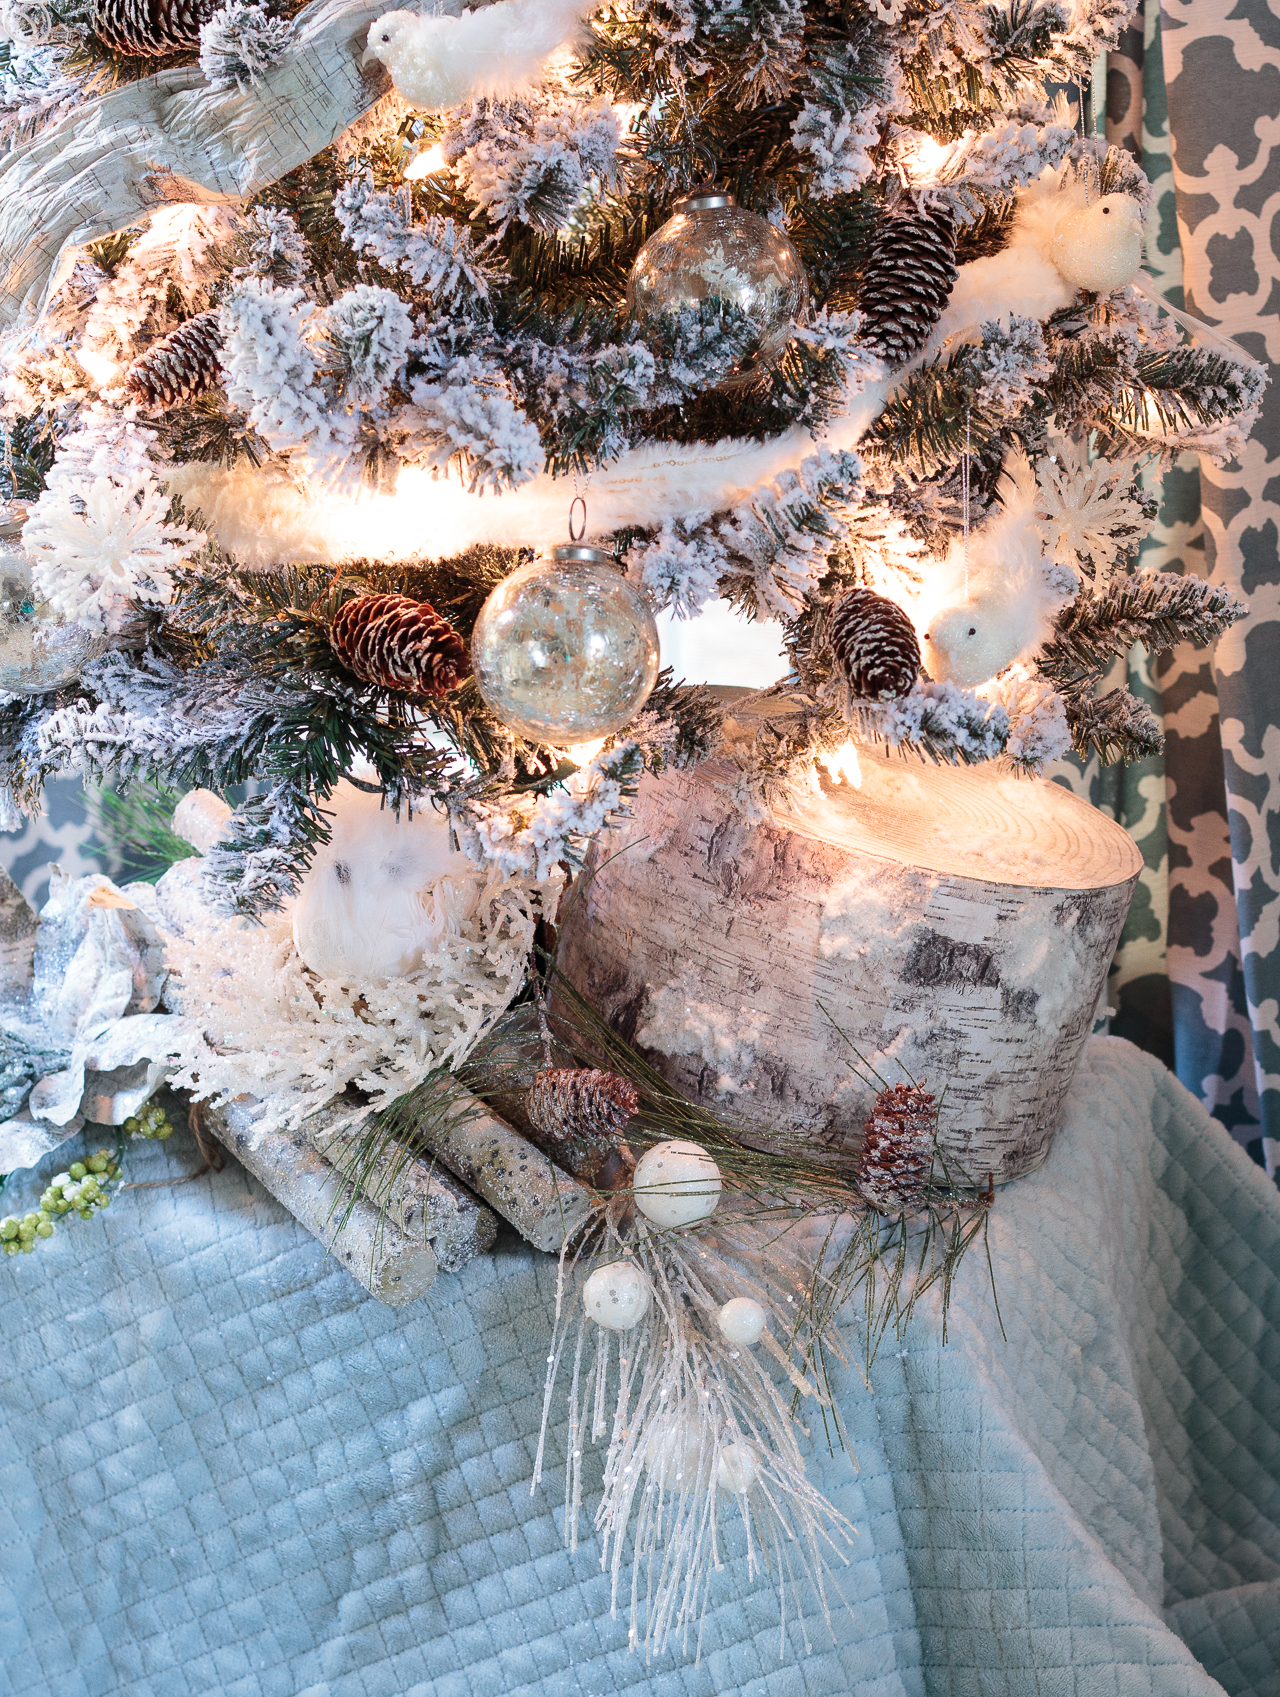 Stunning blue-and-white Christmas decorations featuring a flocked tree, mercury glass, birds and snowy branches. So many wonderful Christmas mantel ideas here. #sponsored #AtHomeStores